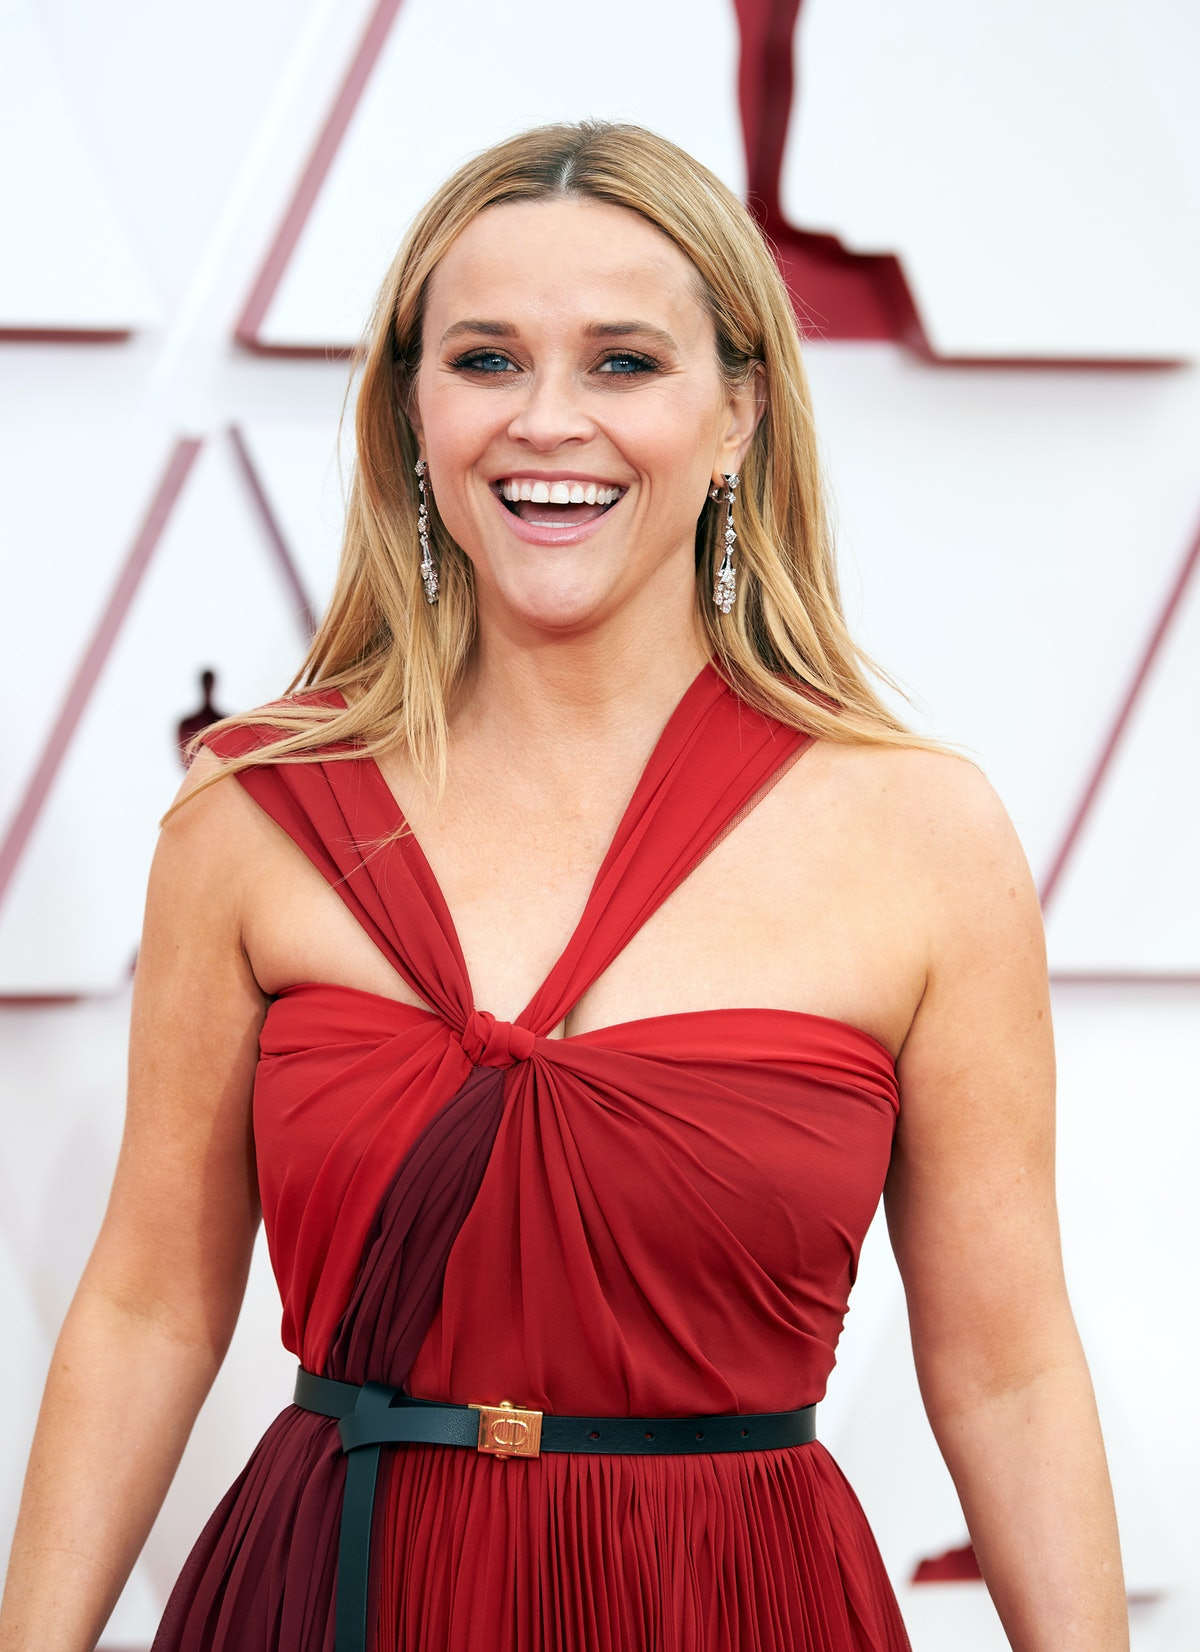 LOS ANGELES, CALIFORNIA – APRIL 25: (EDITORIAL USE ONLY) In this handout photo provided by A.M.P.A.S., Reese Witherspoon attends the 93rd Annual Academy Awards at Union Station on April 25, 2021 in Los Angeles, California. (Photo by Matt Petit/A.M.P.A.S. via Getty Images)